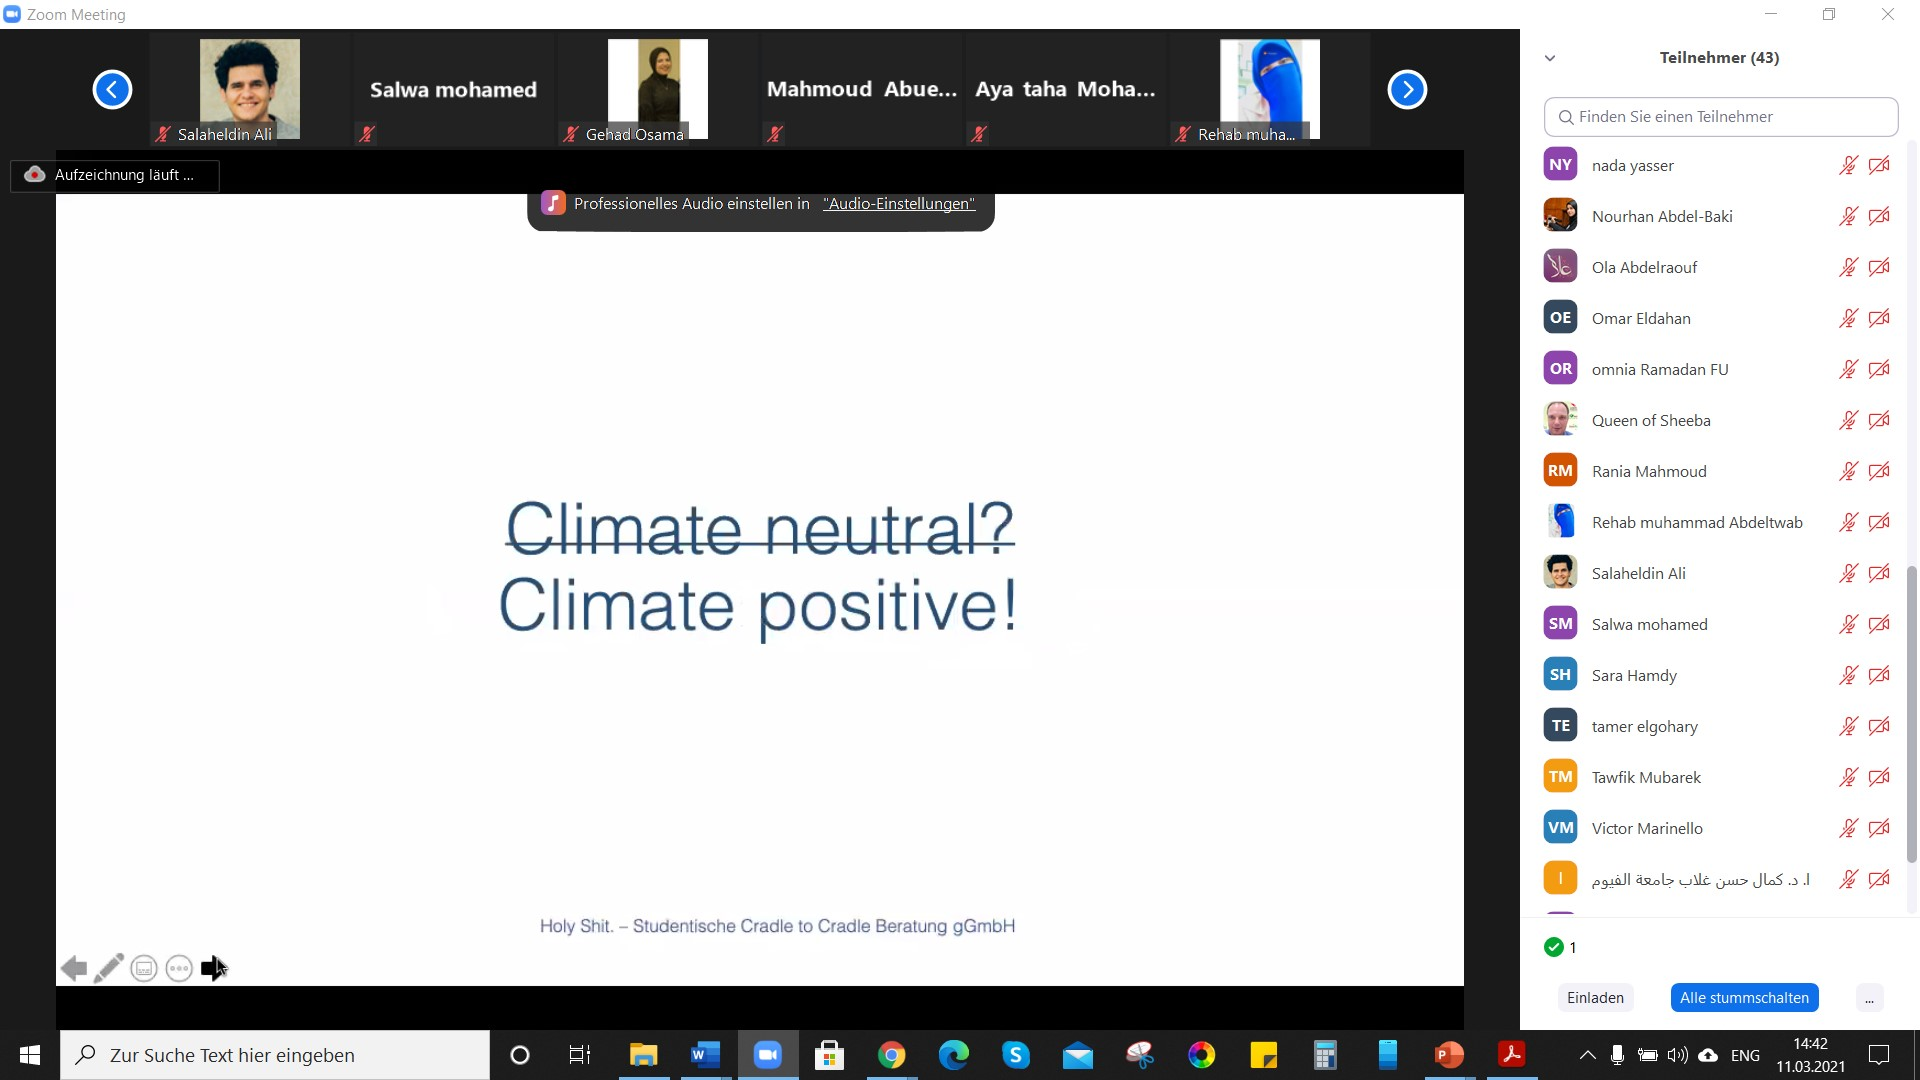 2021-03-11_Website Article_Webinar Sustainable Development and Green Economy (1)